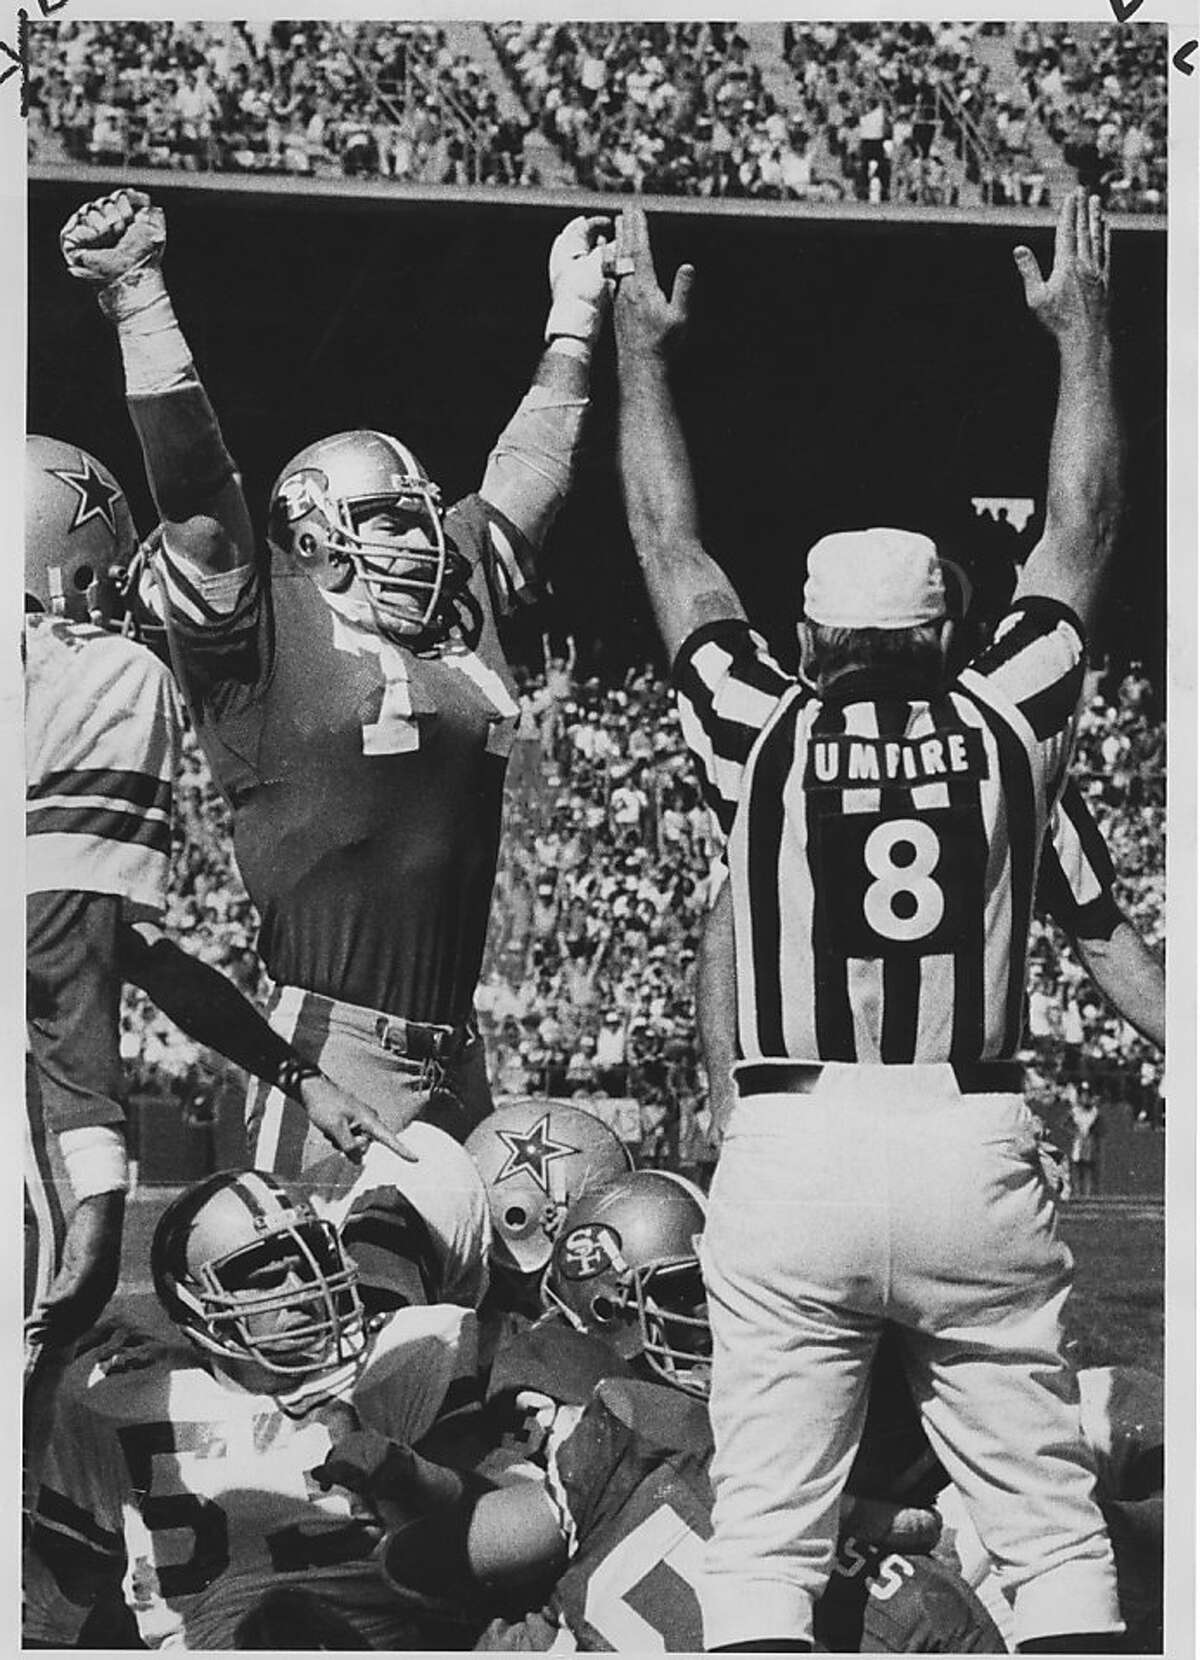 Keith Fahnhorst signals TD in first quarter with official Pat Hardes. First TD. October 11, 1981.